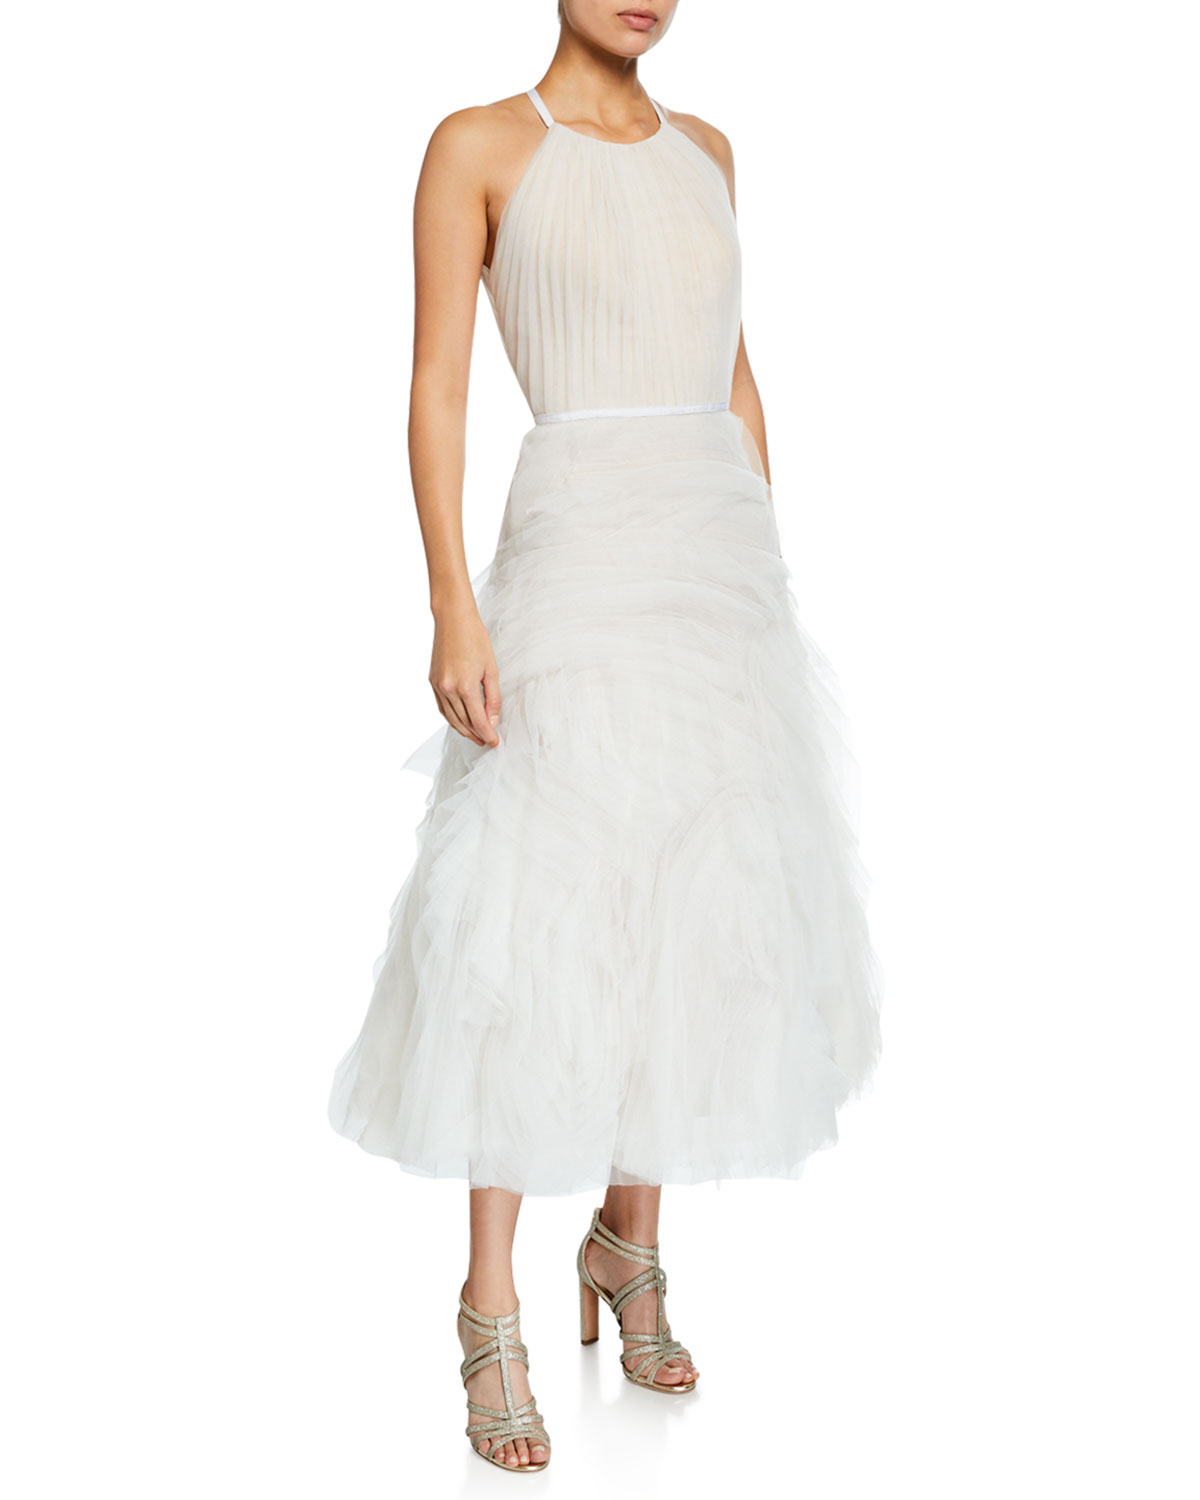 MARCHESA NOTTE Halter-Neck Textured Tulle Draped Bodice Tea-Length Gown in Ivory